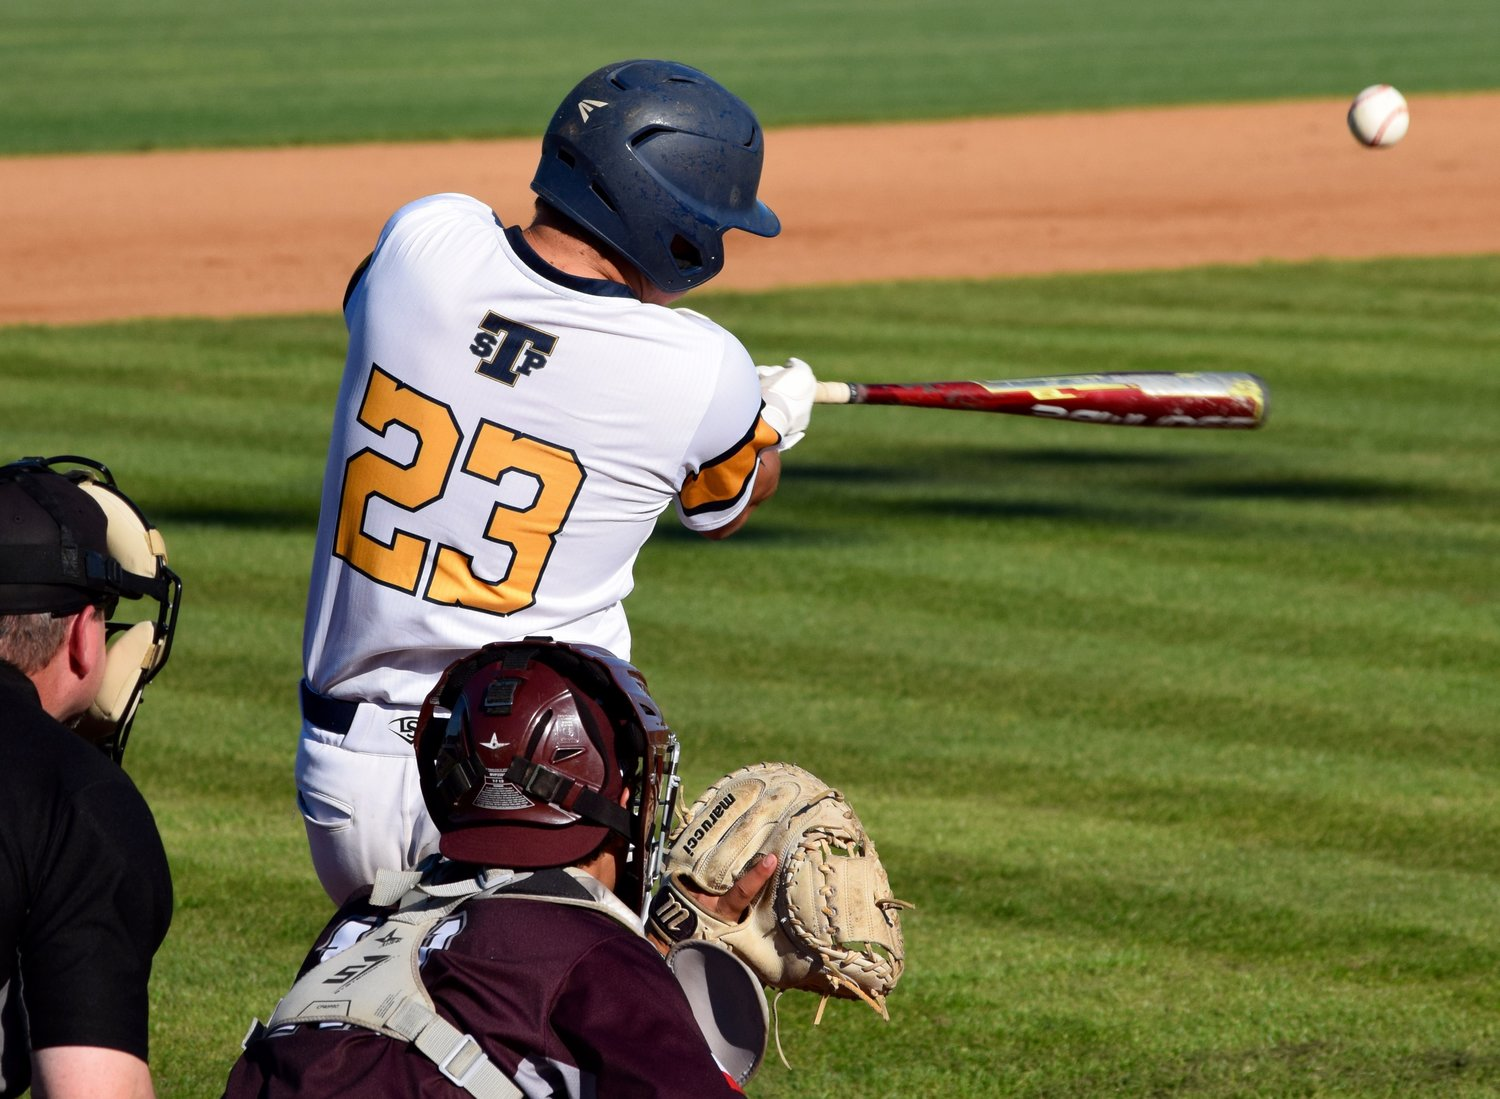 Chance Green and Stony Point beat Round Rock 8-3 at home on Monday afternoon.